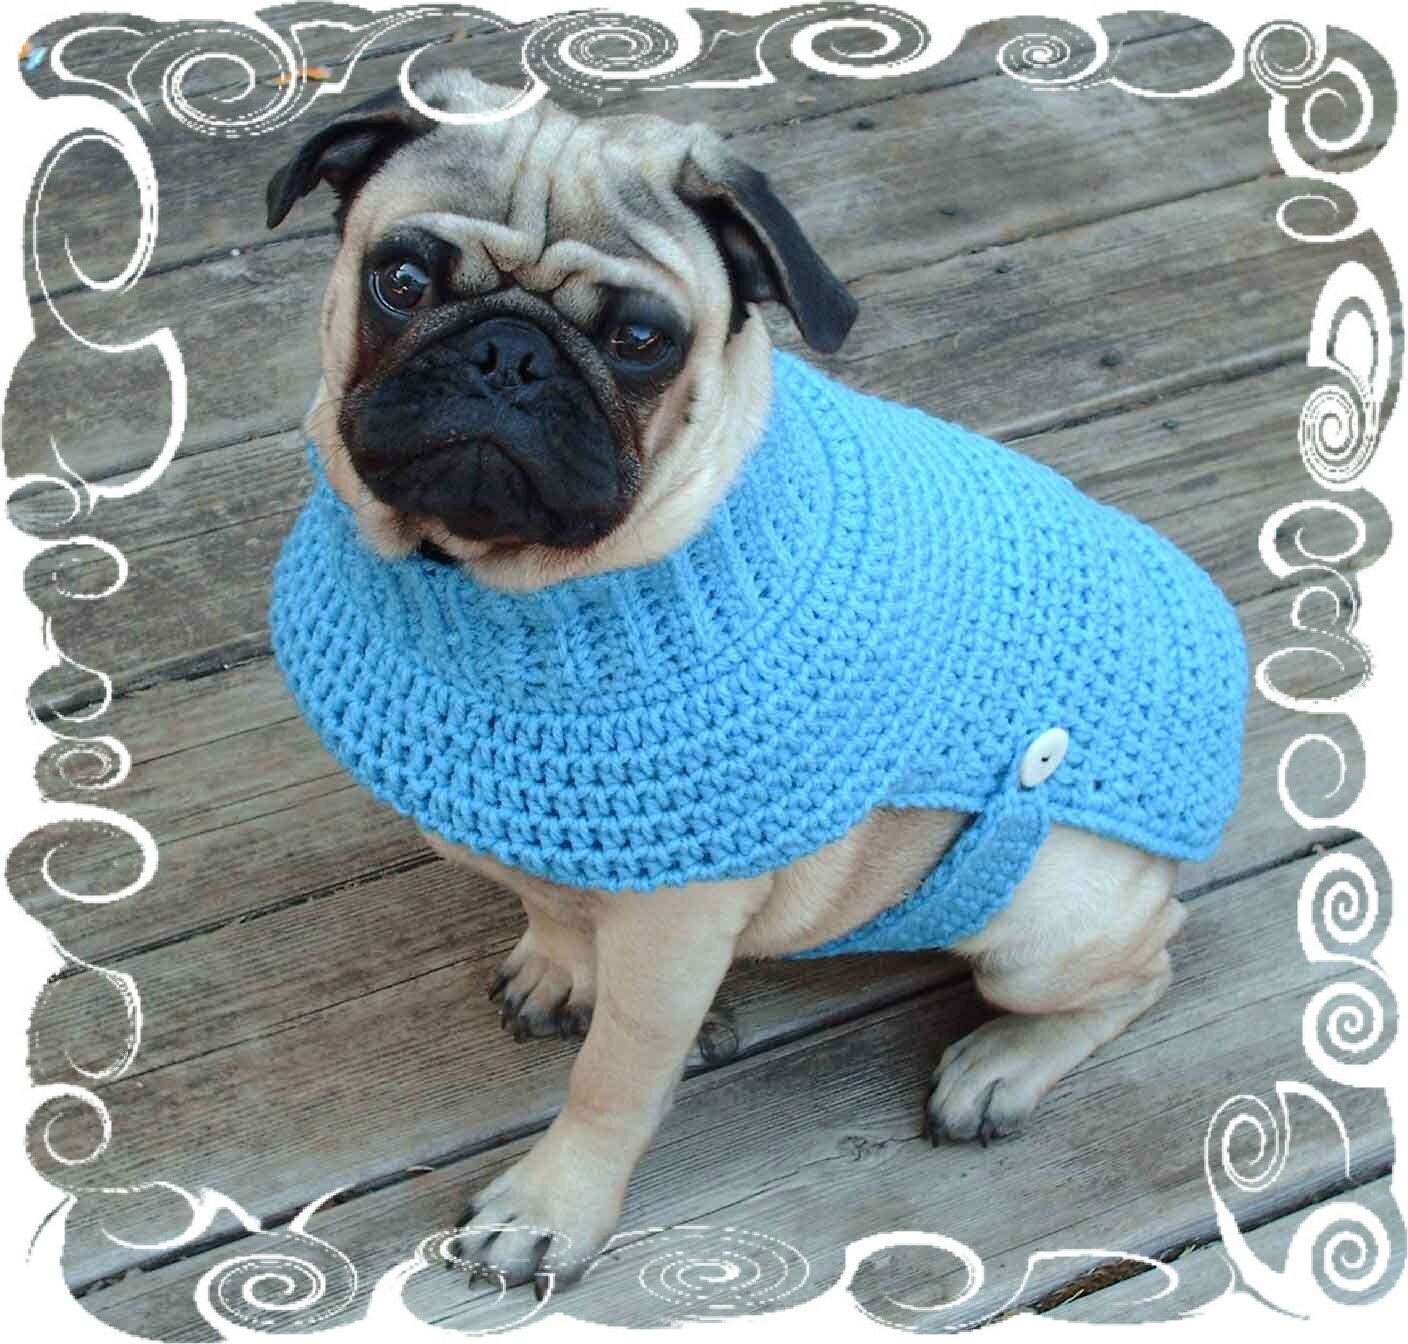 Crochet pet sweaters free patterns squareone for dog sweater crochet pattern puppy crochet sweater by hmcquigg bankloansurffo Image collections